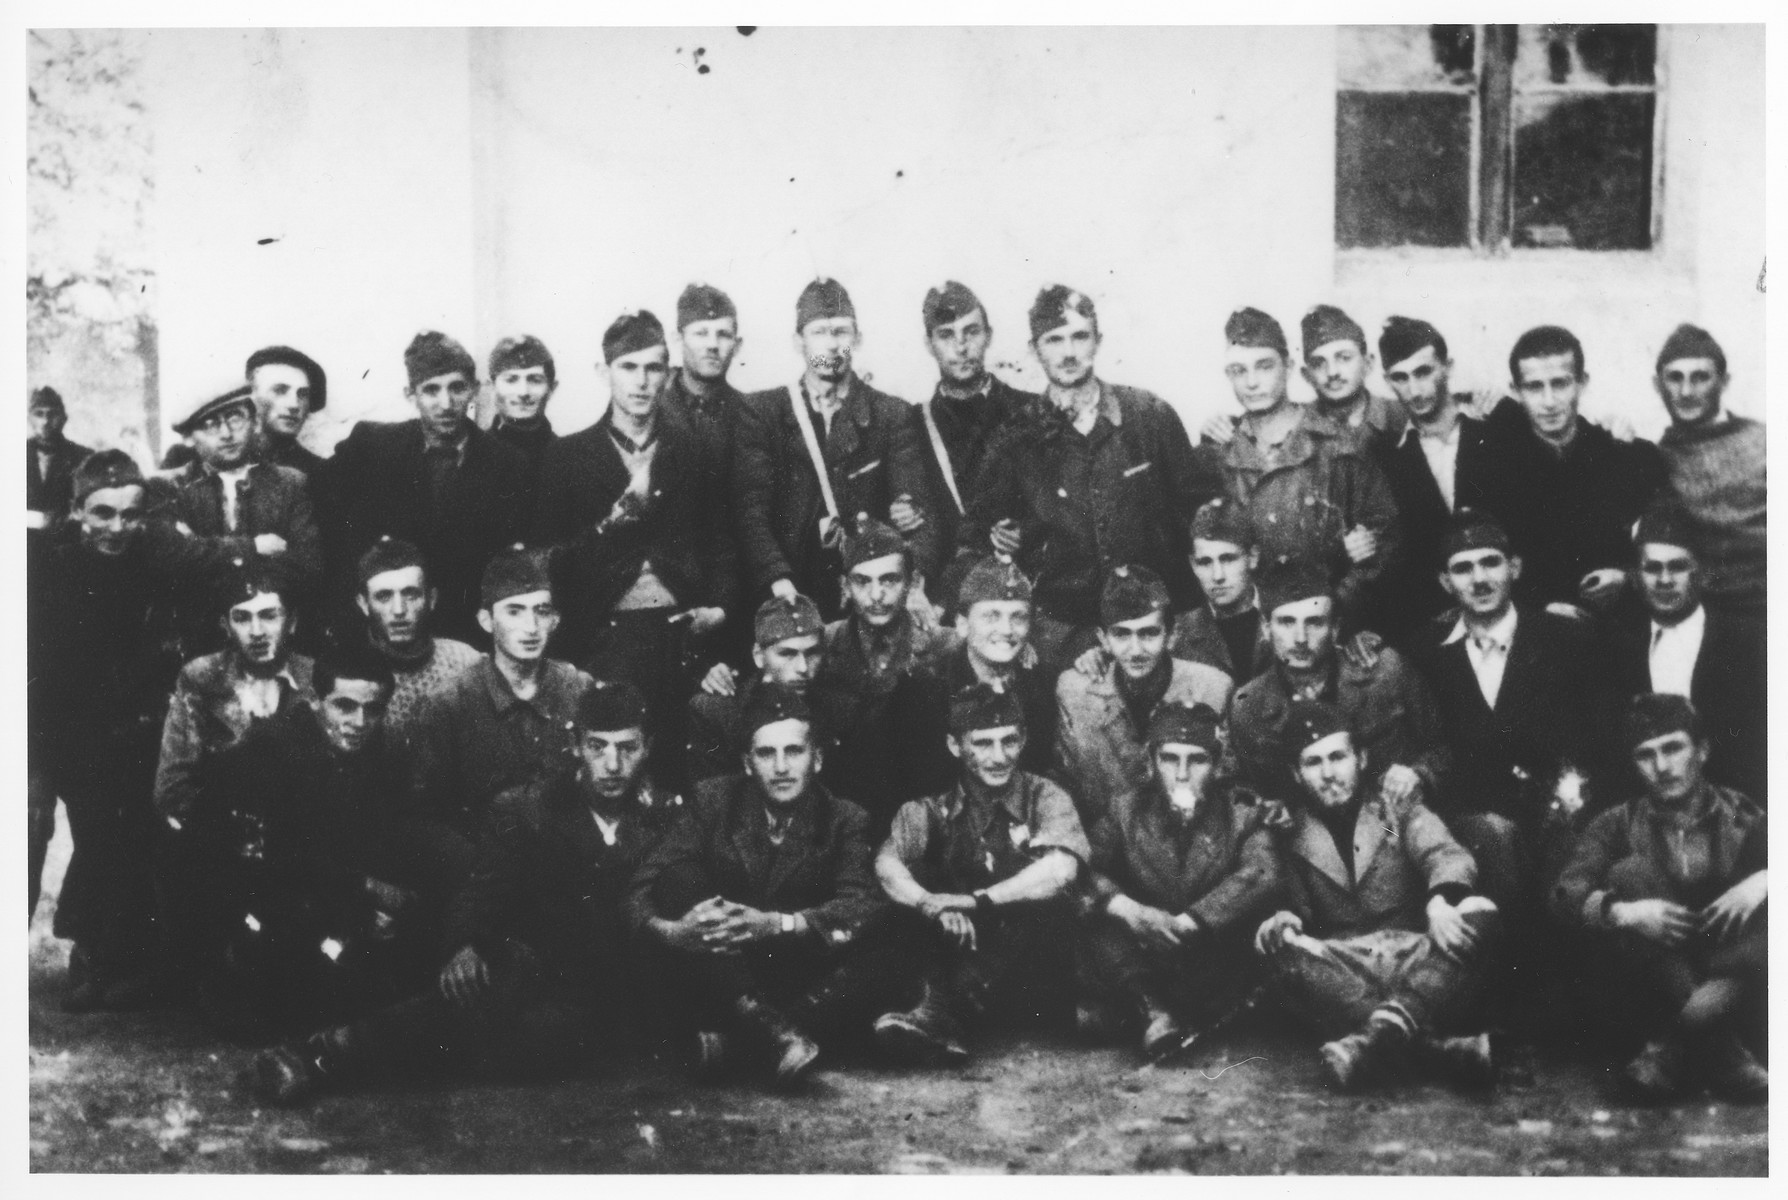 Group portrait of members of an Hungarian labor battalion in Baia-Mare (Nagybanya).